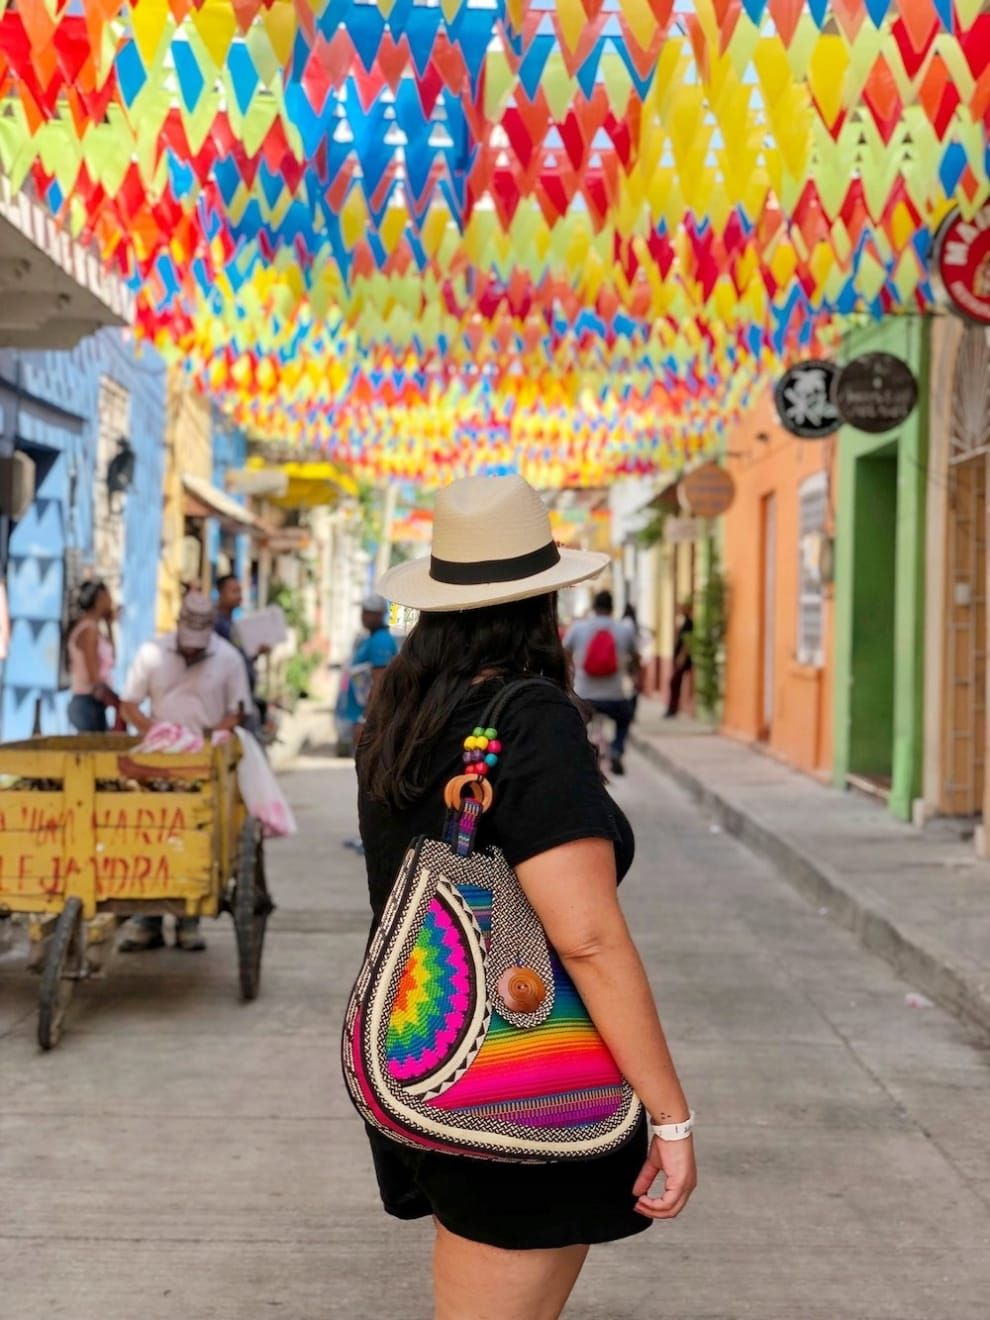 21 Reasons You Should Never Visit Colombia